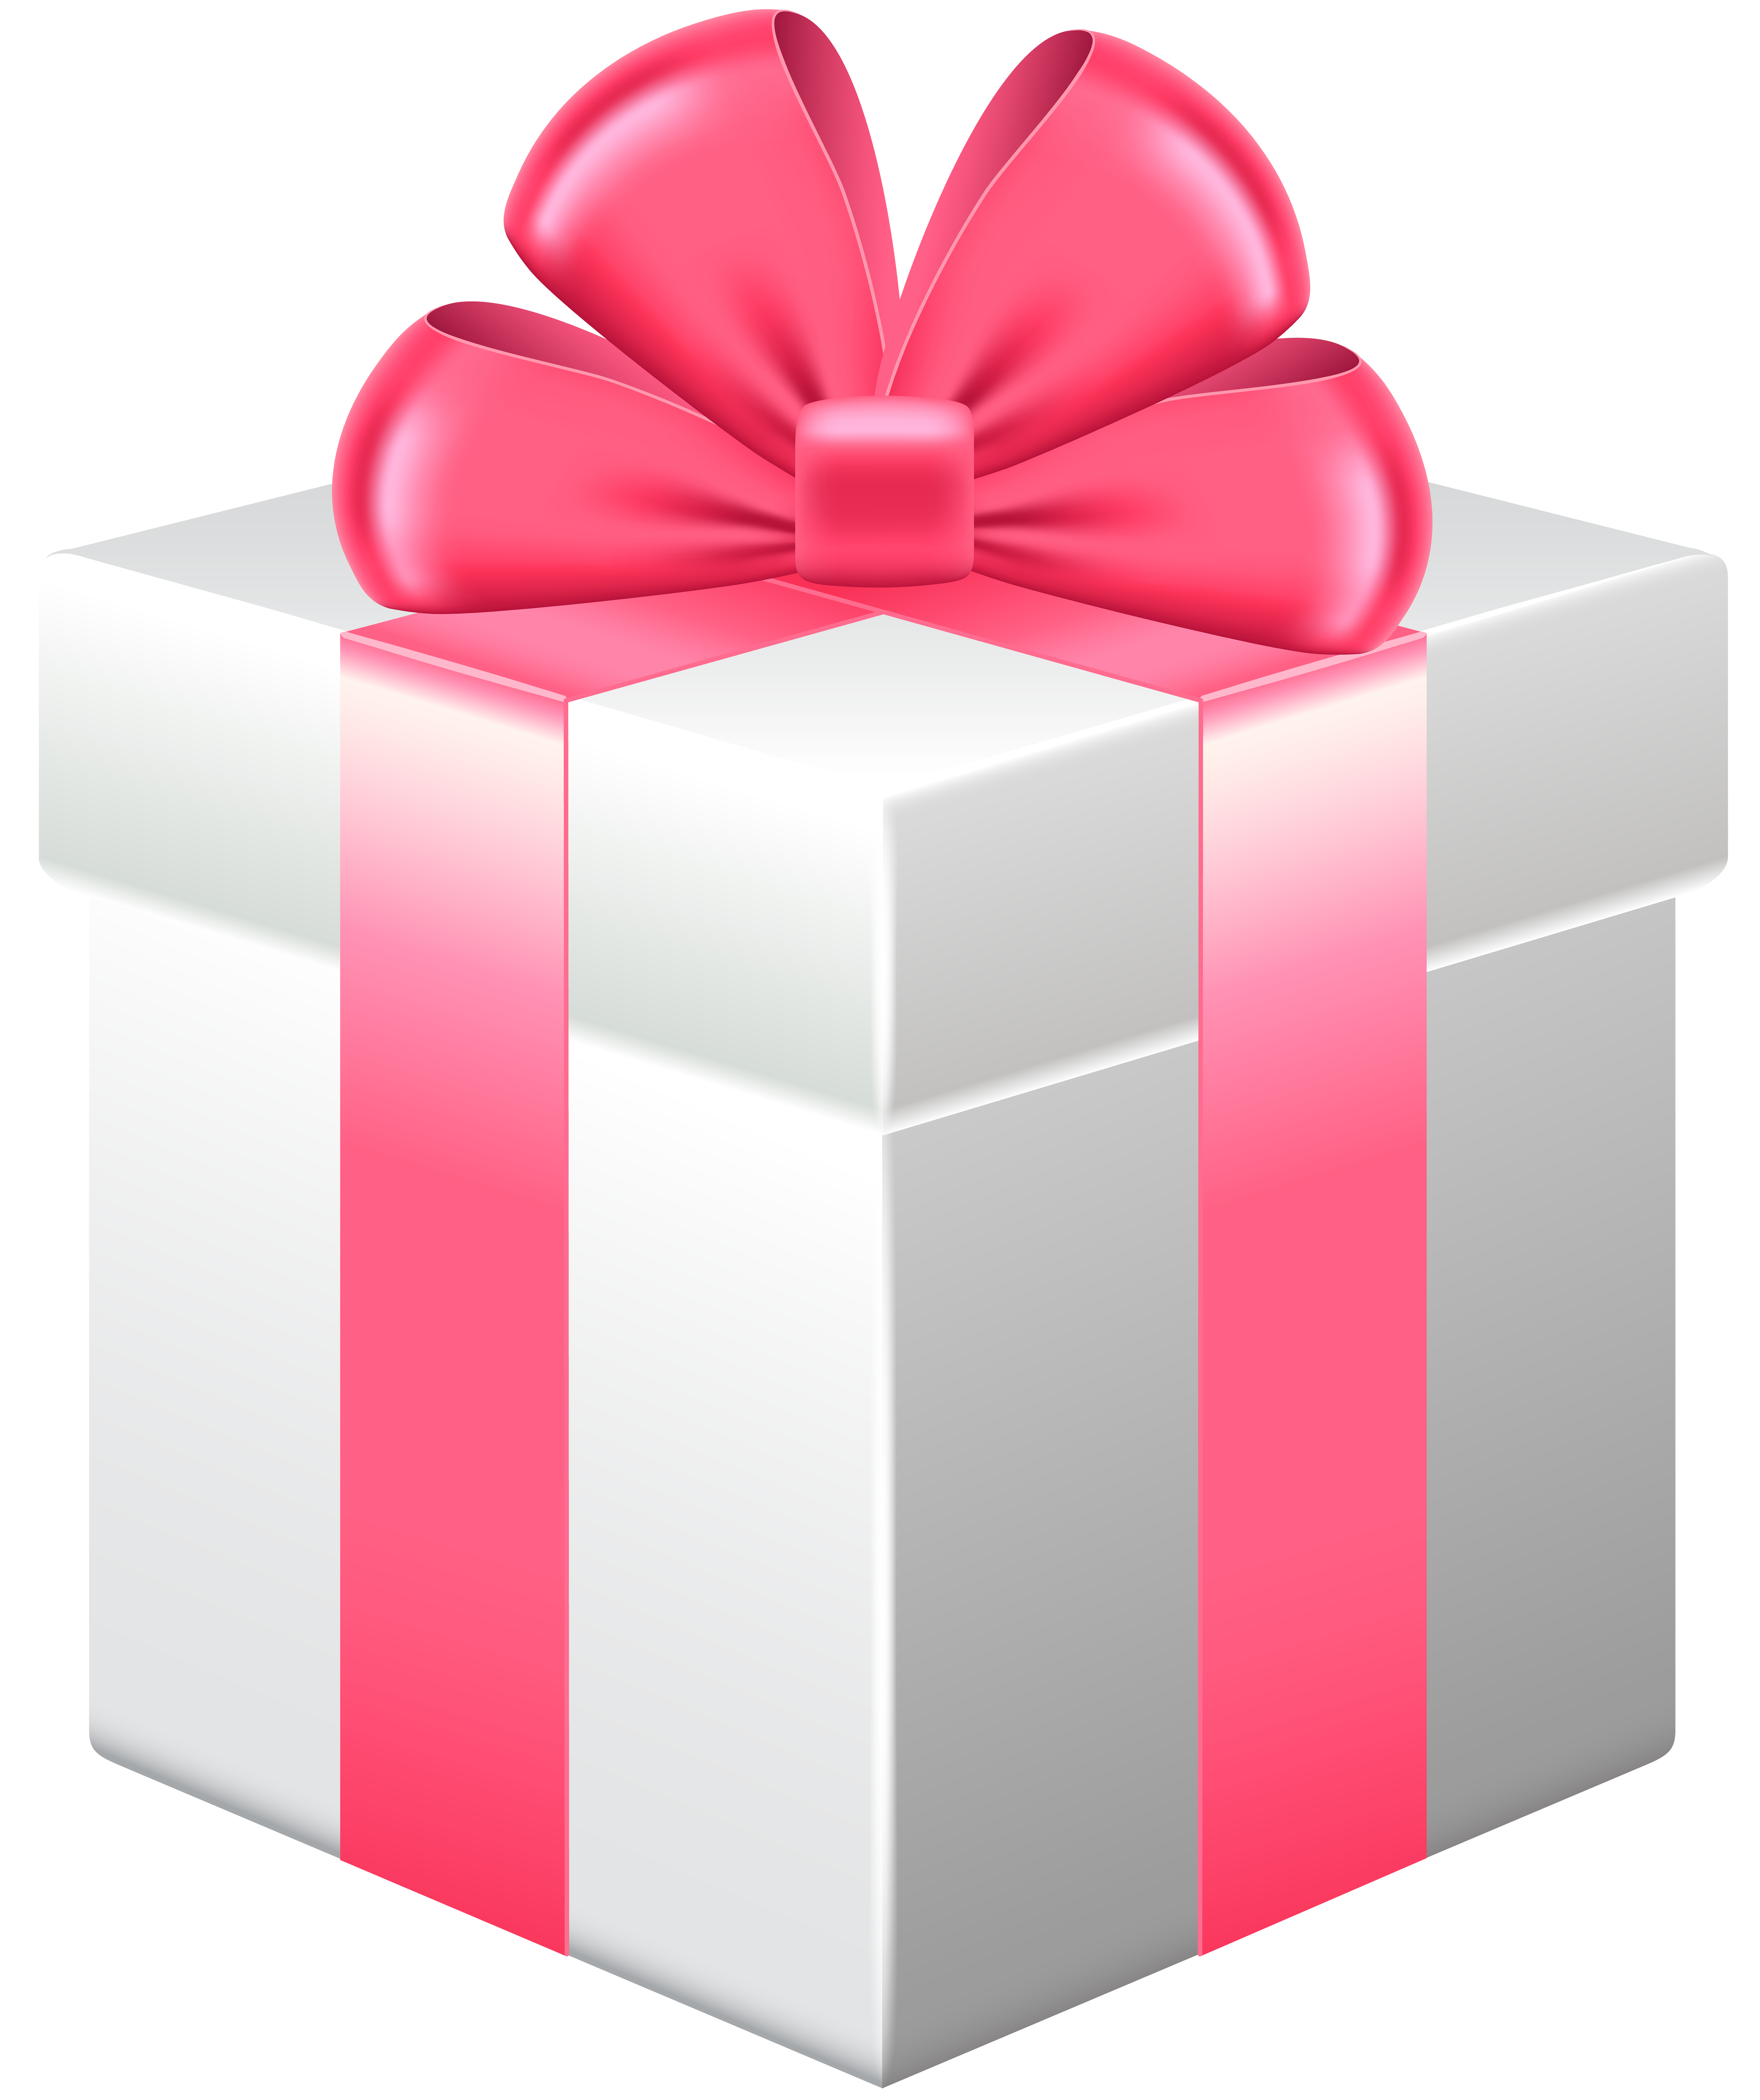 Gift box with money coming out clipart banner library stock Gift Box with Pink Bow PNG Clipart - Best WEB Clipart banner library stock